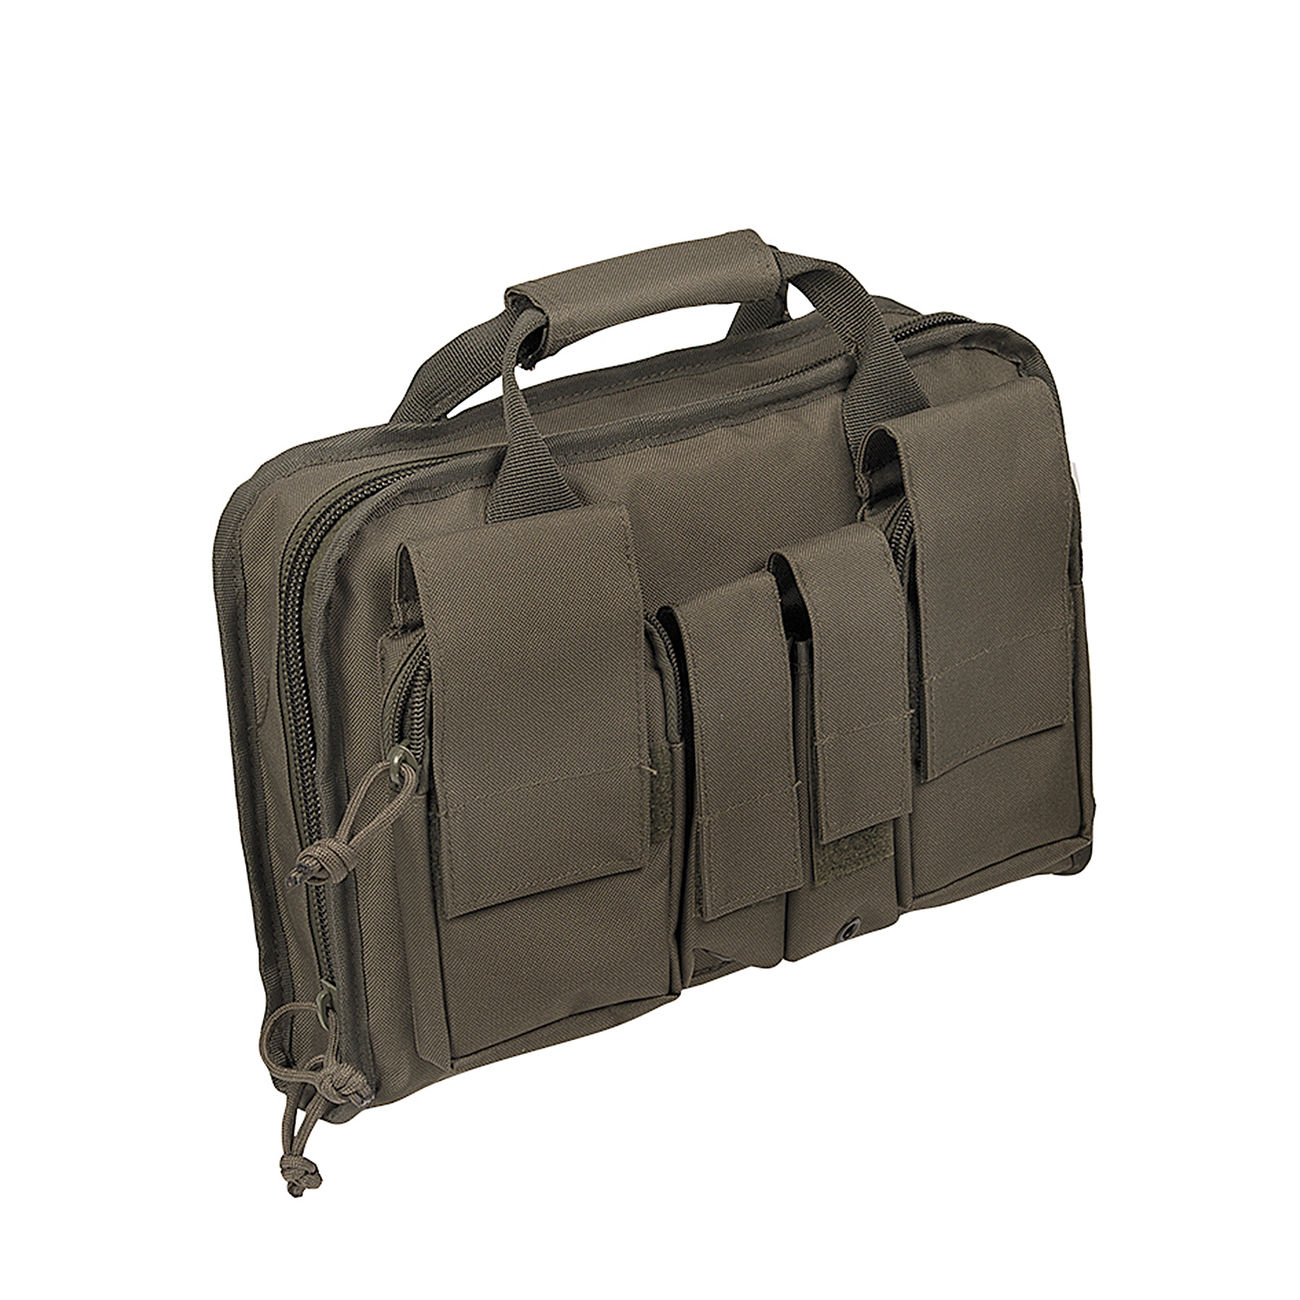 Mil-Tec Tactical Pistol Case Small oliv 0